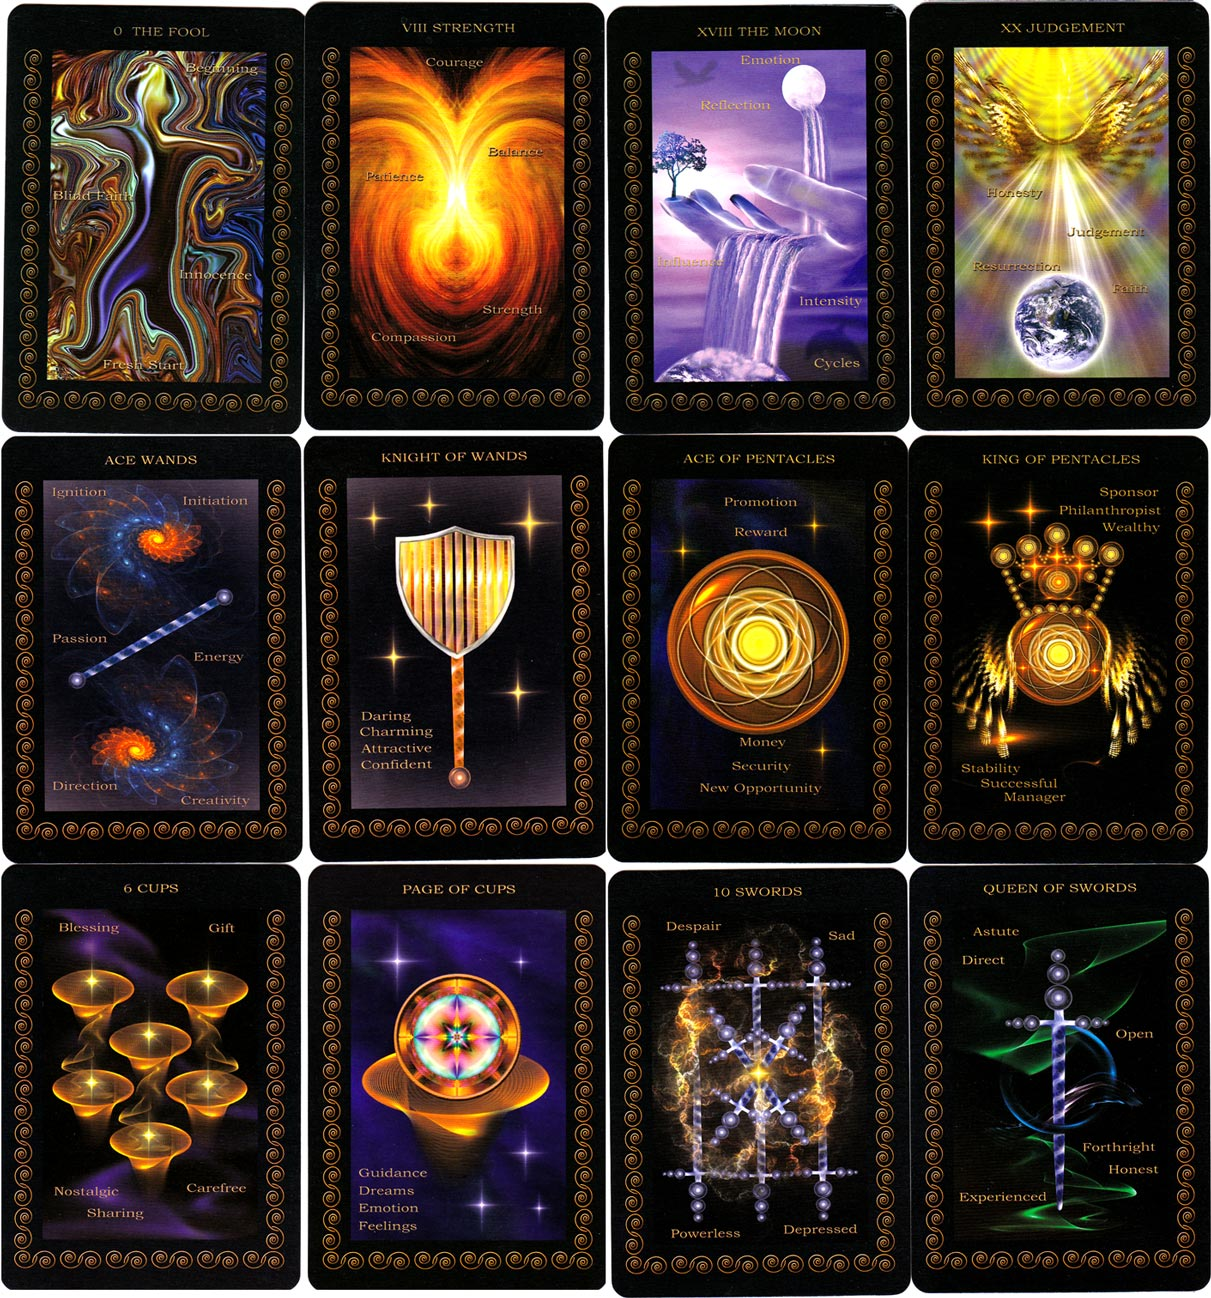 Inner Realms Tarot, designed by Saleire, 2012